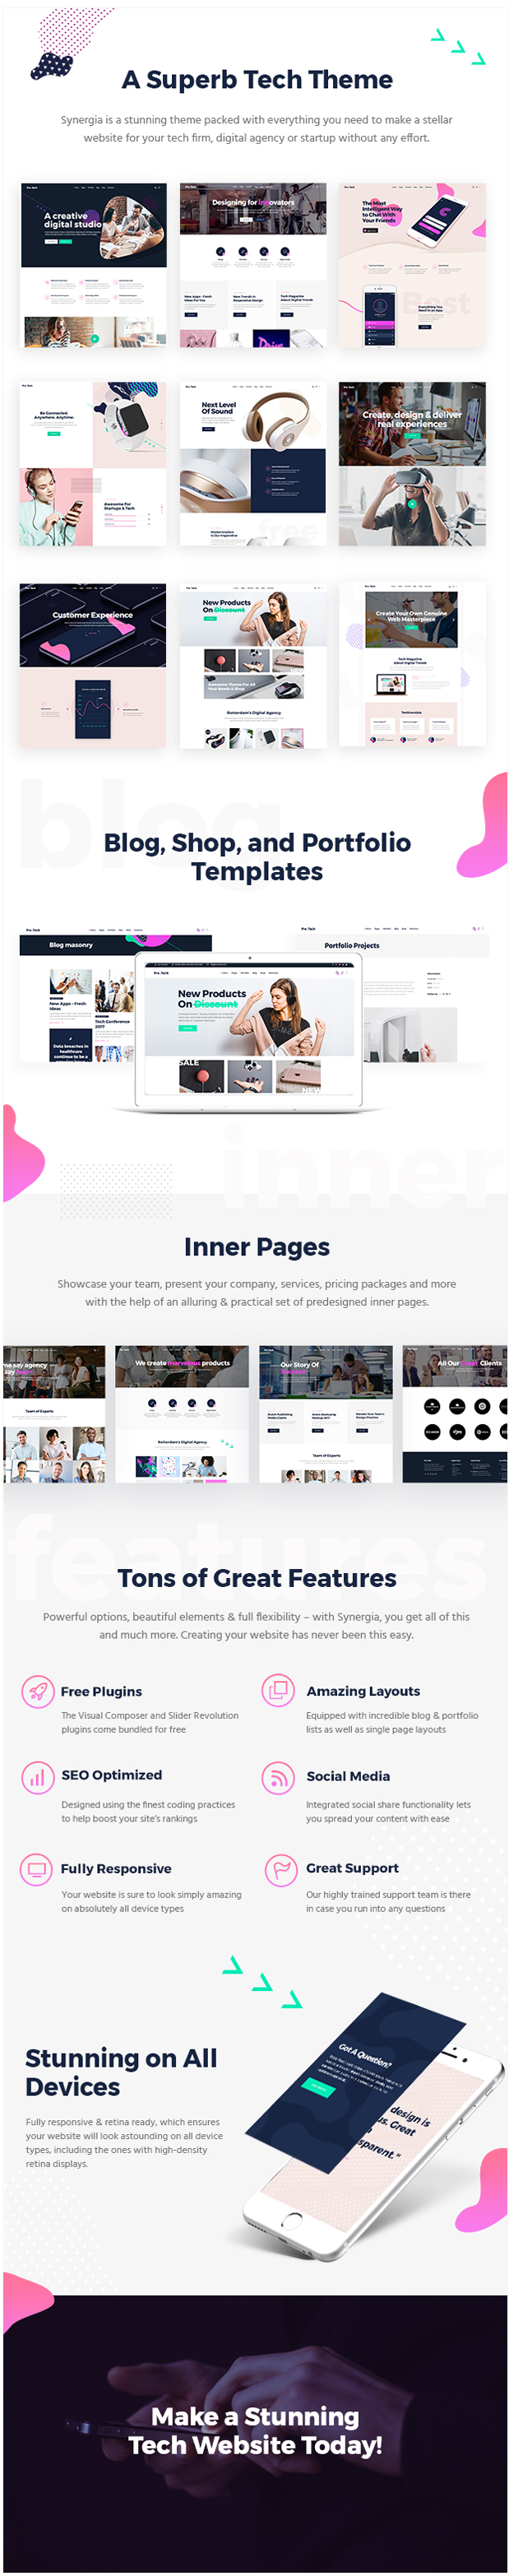 Synergia - Multi-Concept Theme for Digital Agencies and Startups - 1